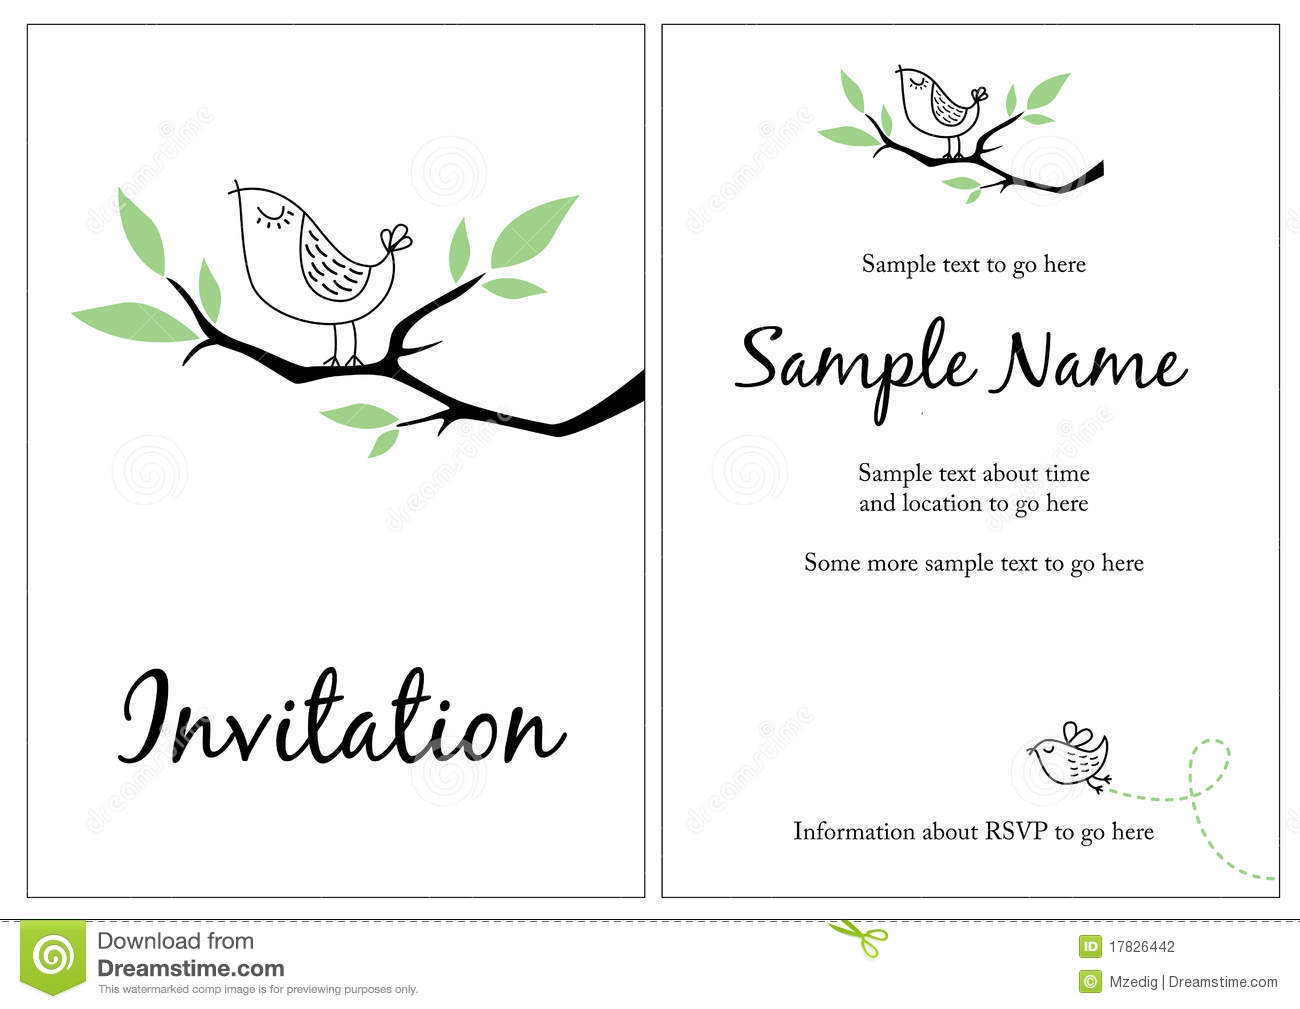 Pretty Invitation Photography Image 17826442 – Naming Ceremony Invitation Template